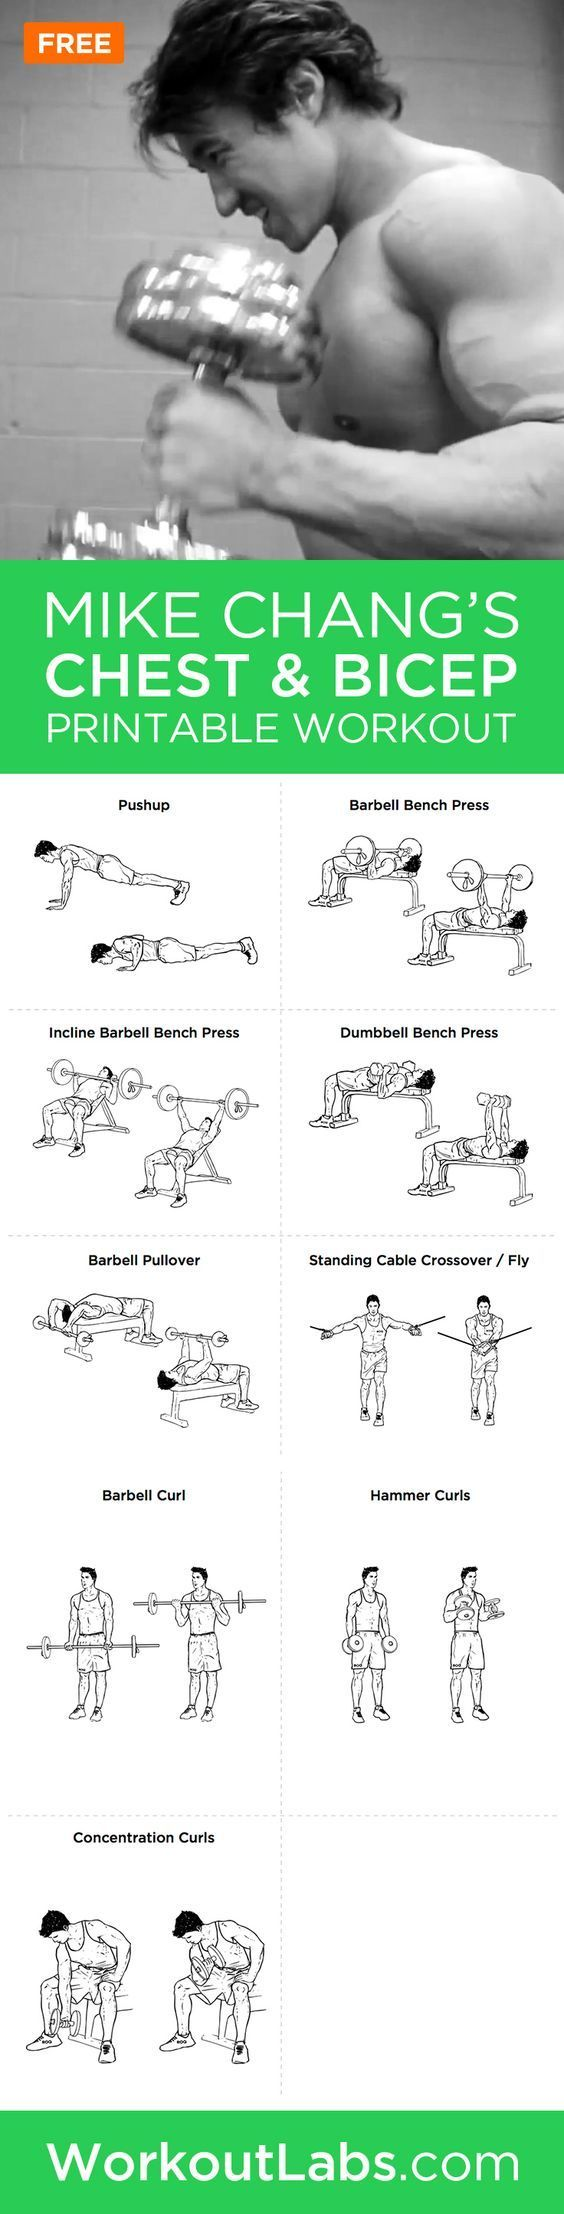 Mike Changs Actual Chest And Bicep Workout Featuring The Exercises You Will Need To Build Ripped